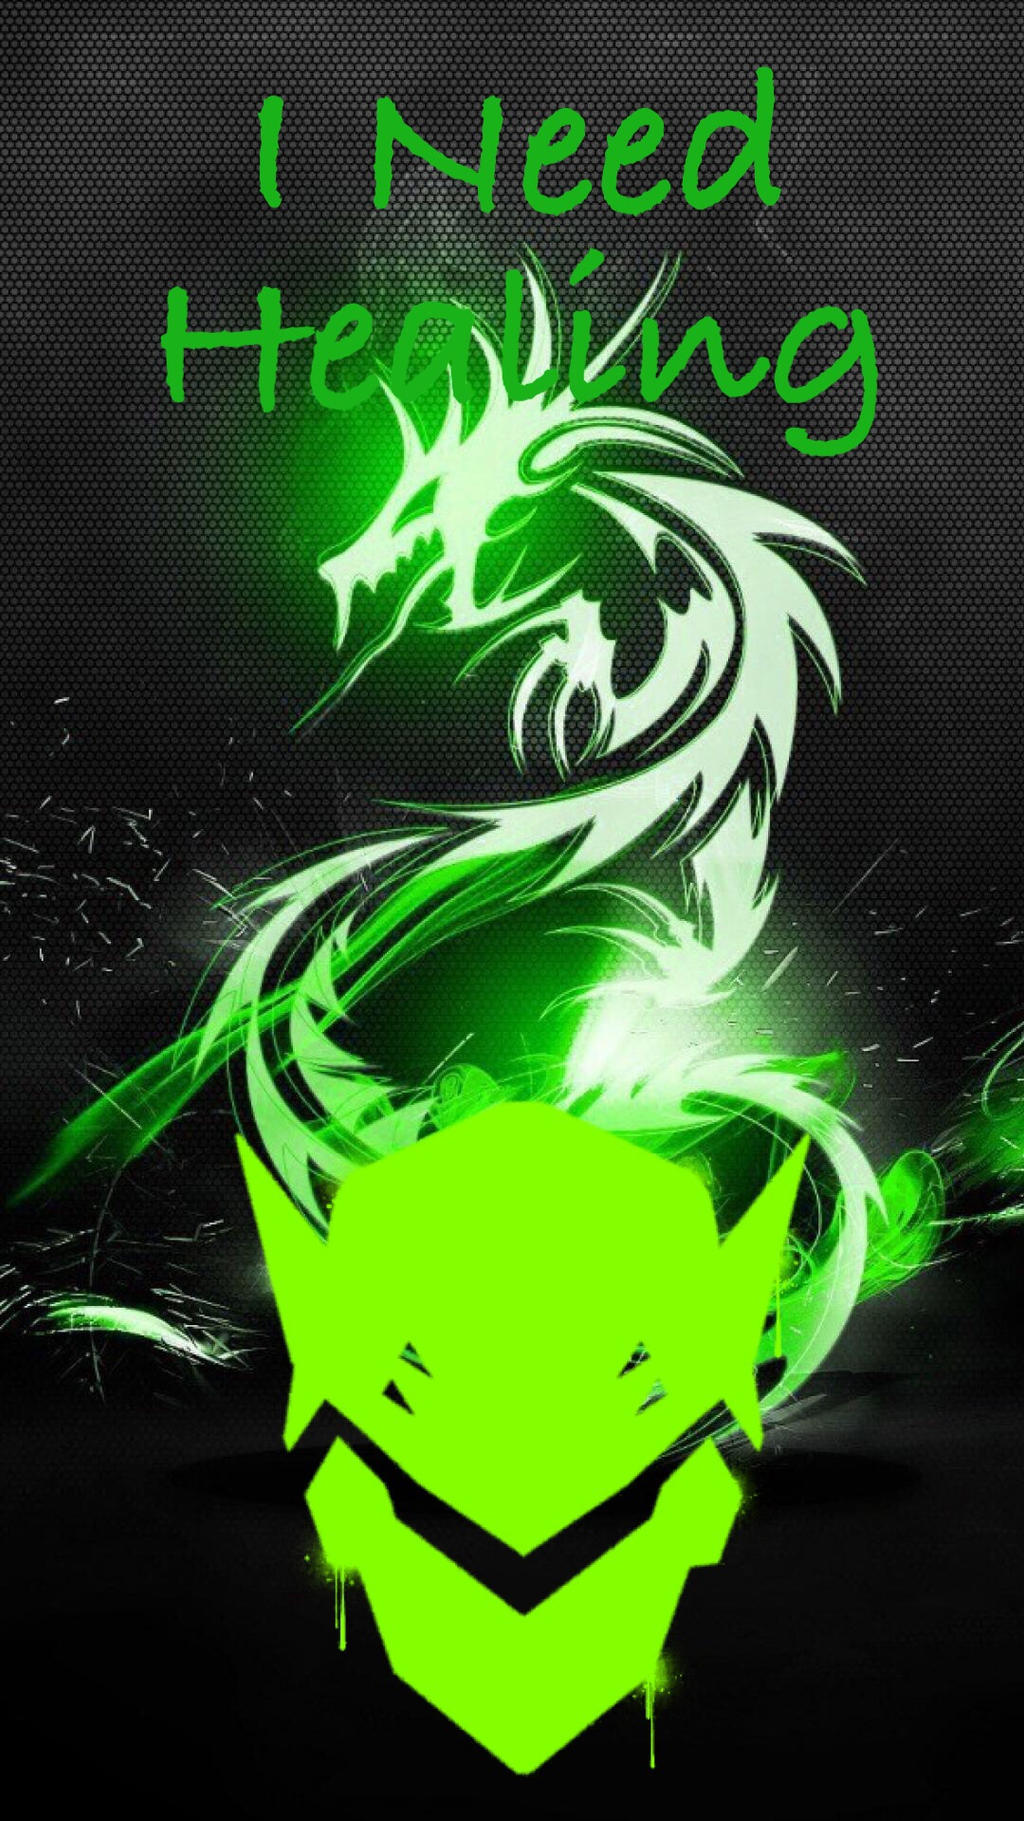 Overwatch Genji Iphone Wallpaper By Shadowburst123 On Deviantart